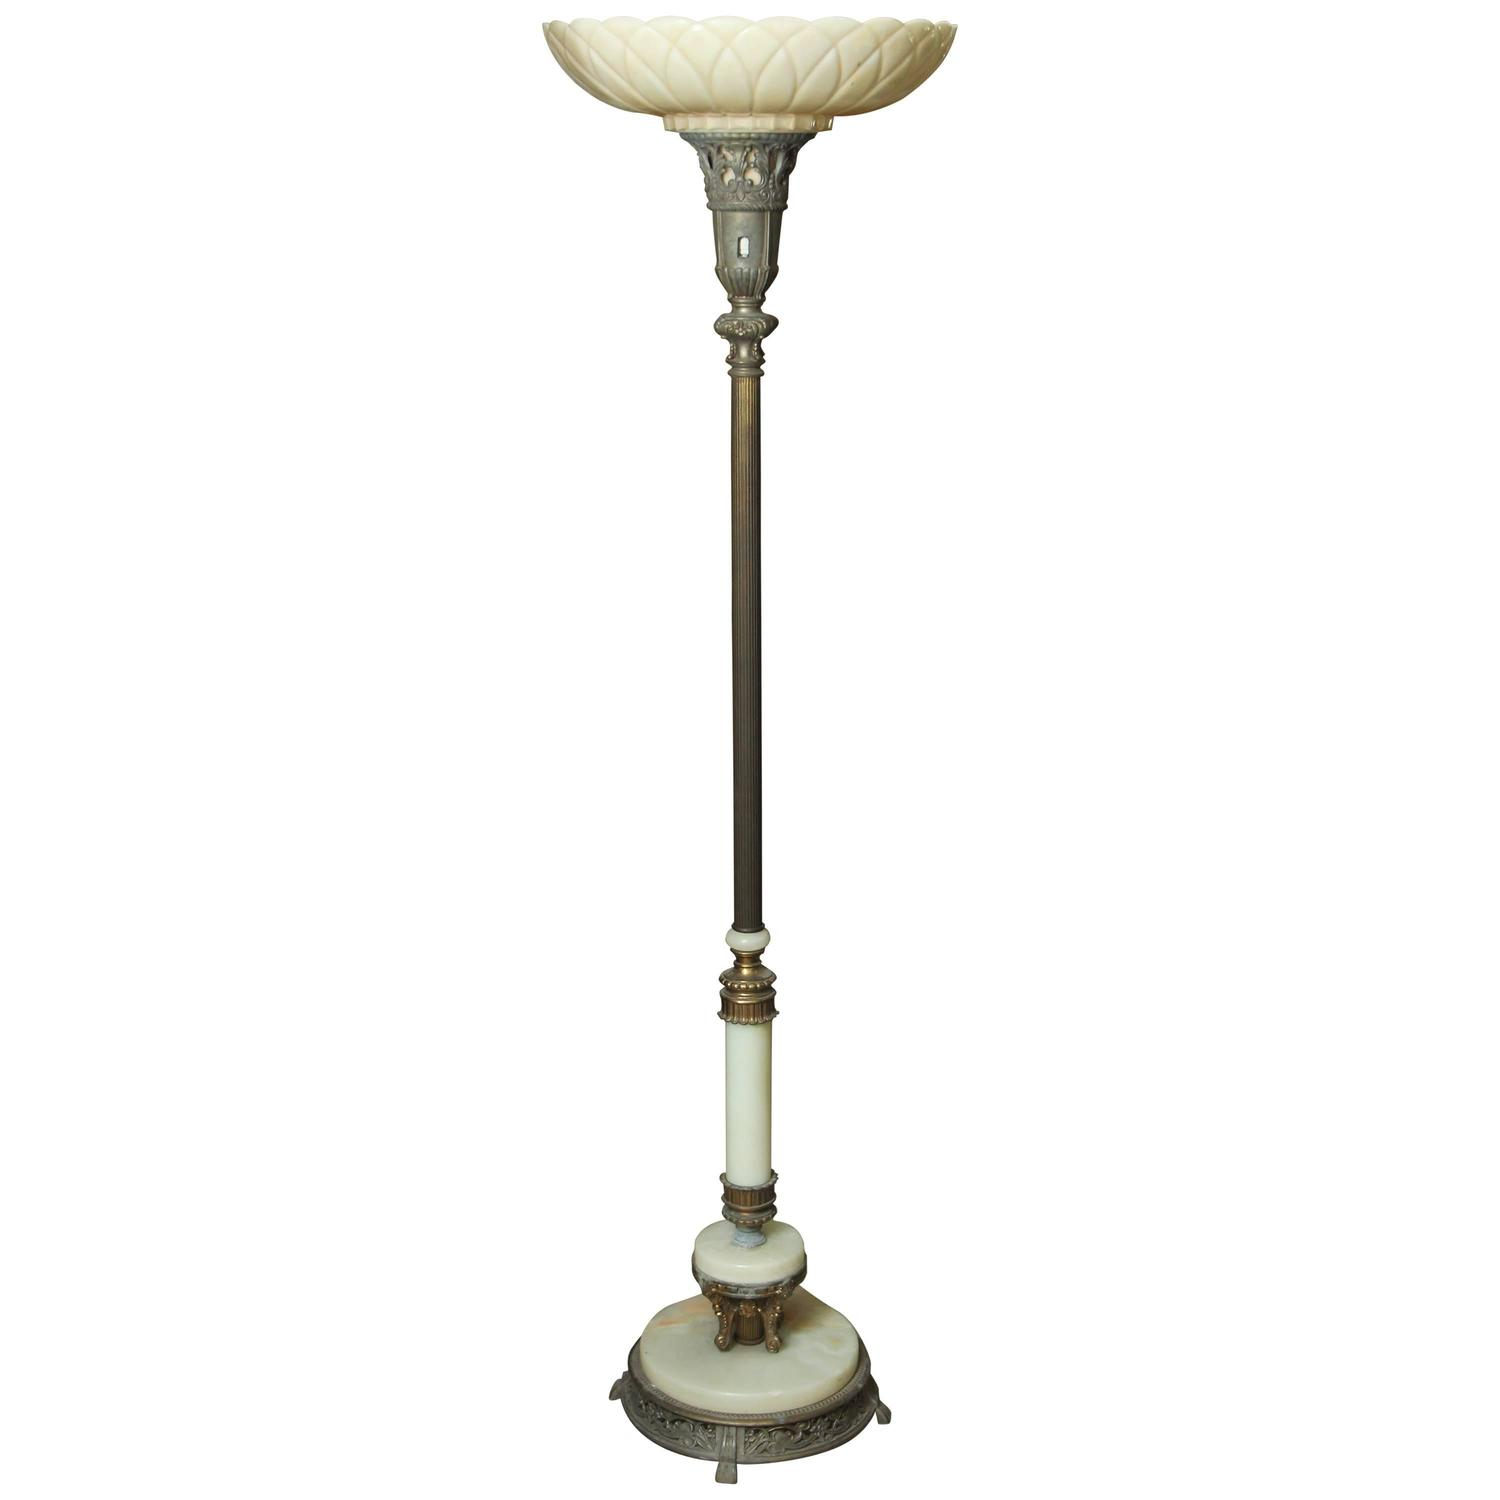 1930s Art Nouveau Torchiere Floor Lamp with Marble Base and Fluted ...